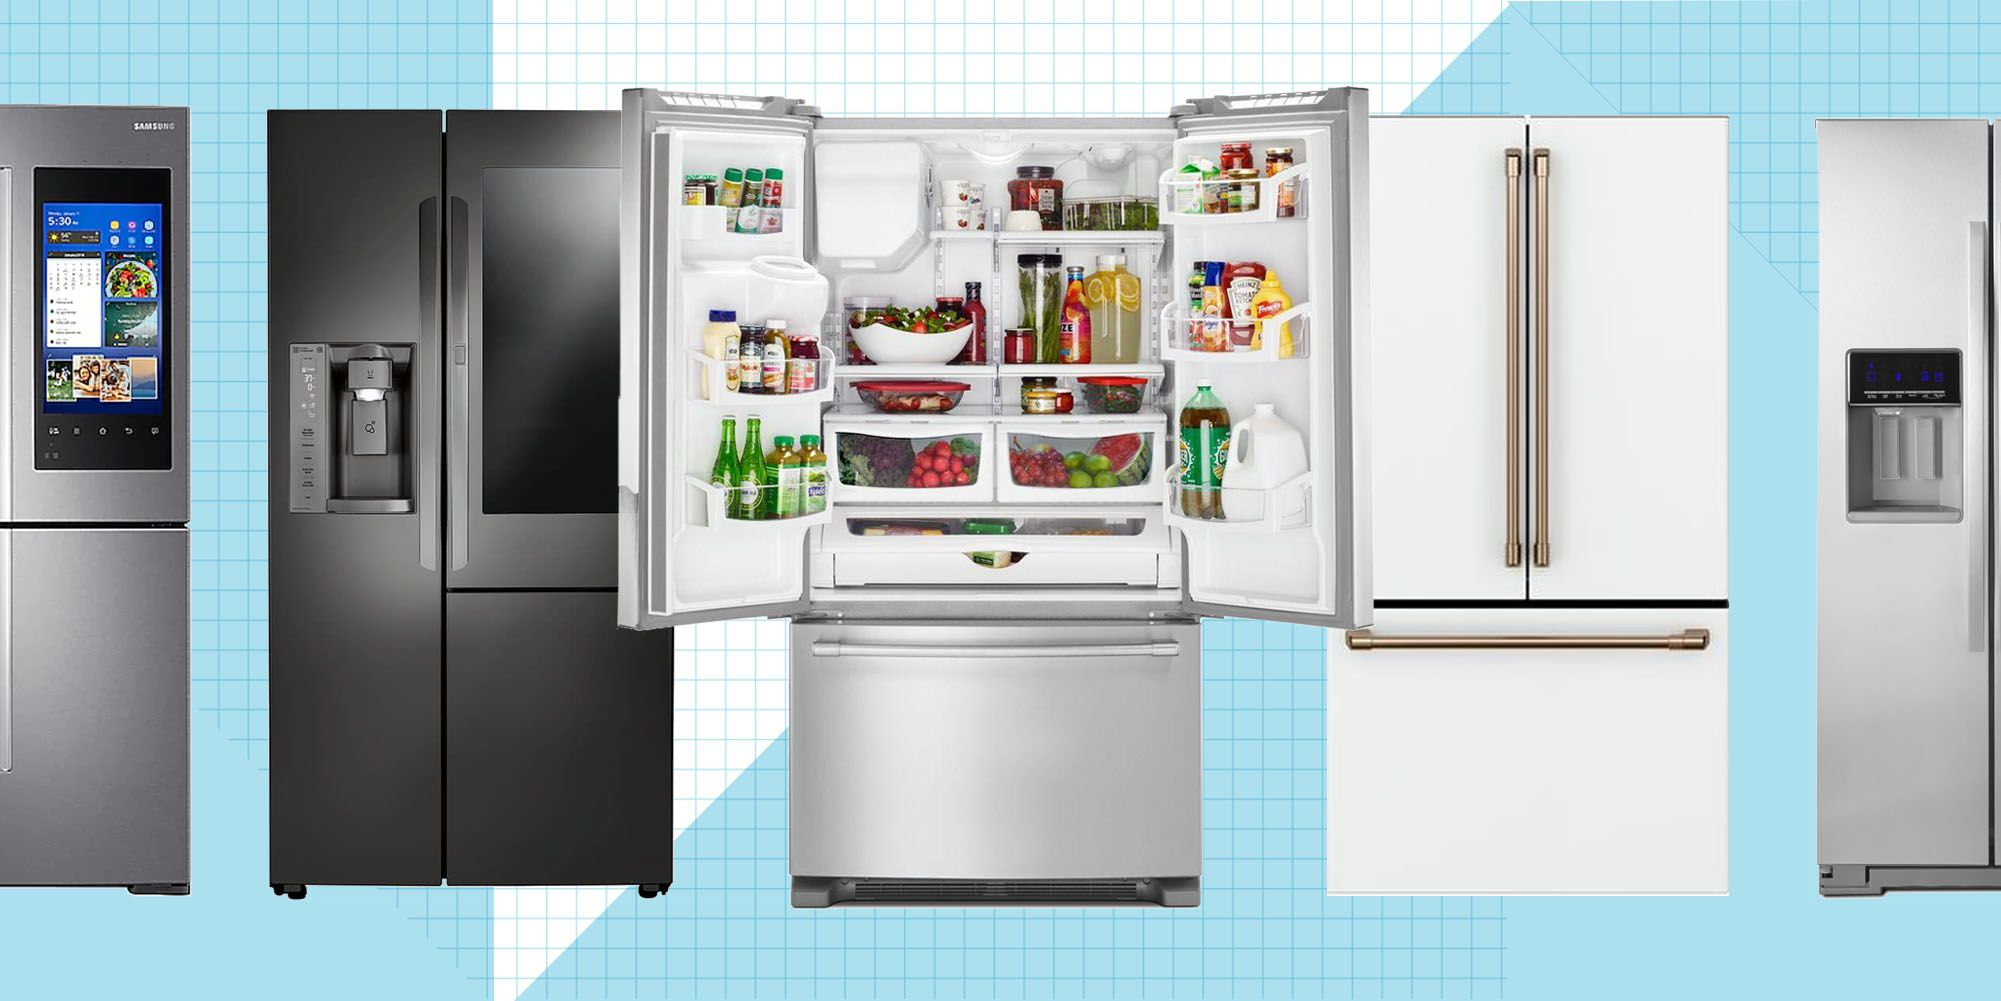 5 Best Refrigerator Brands That You Can Rely On In 2019